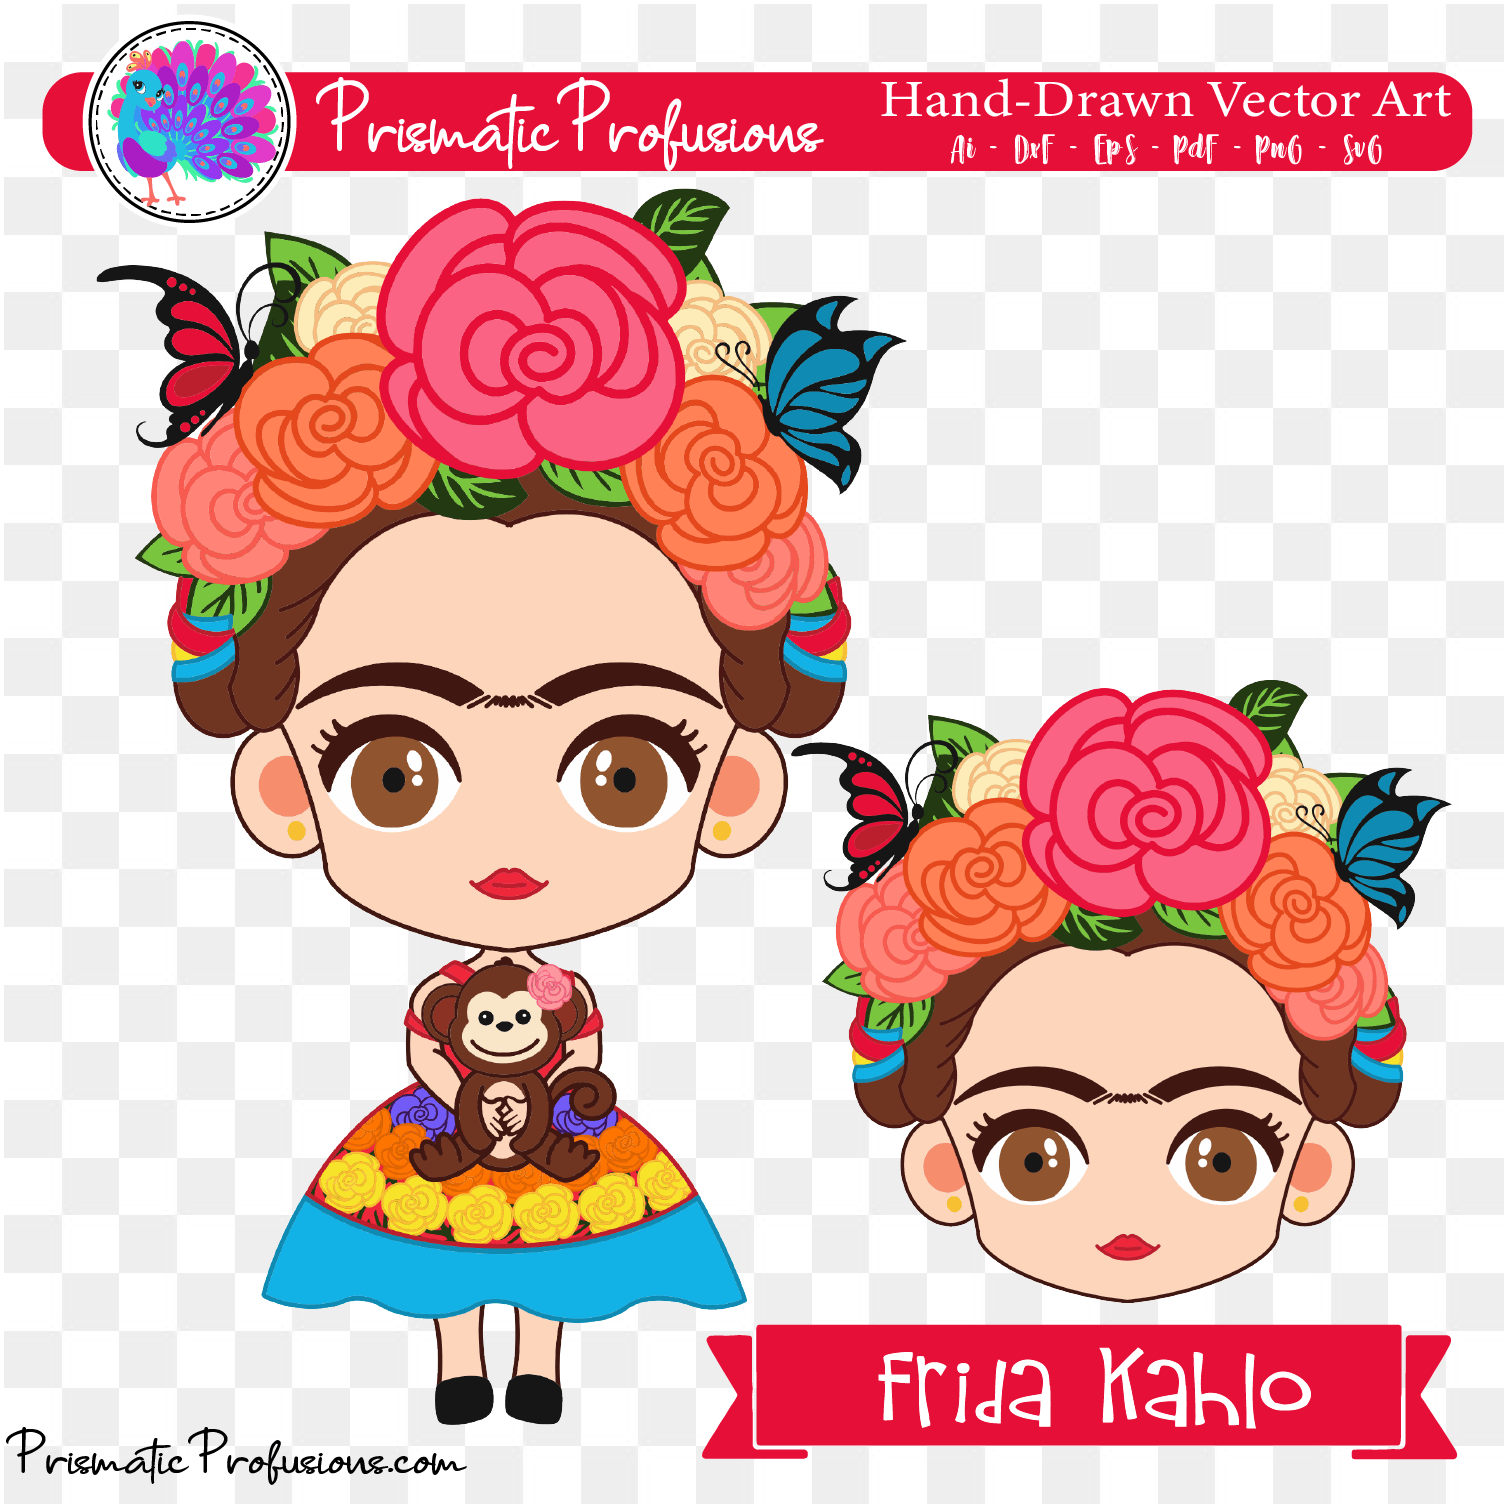 Frida kahlo vector clipart vector library download Frida Kahlo SVG, Frida Kahlo Clipart vector library download